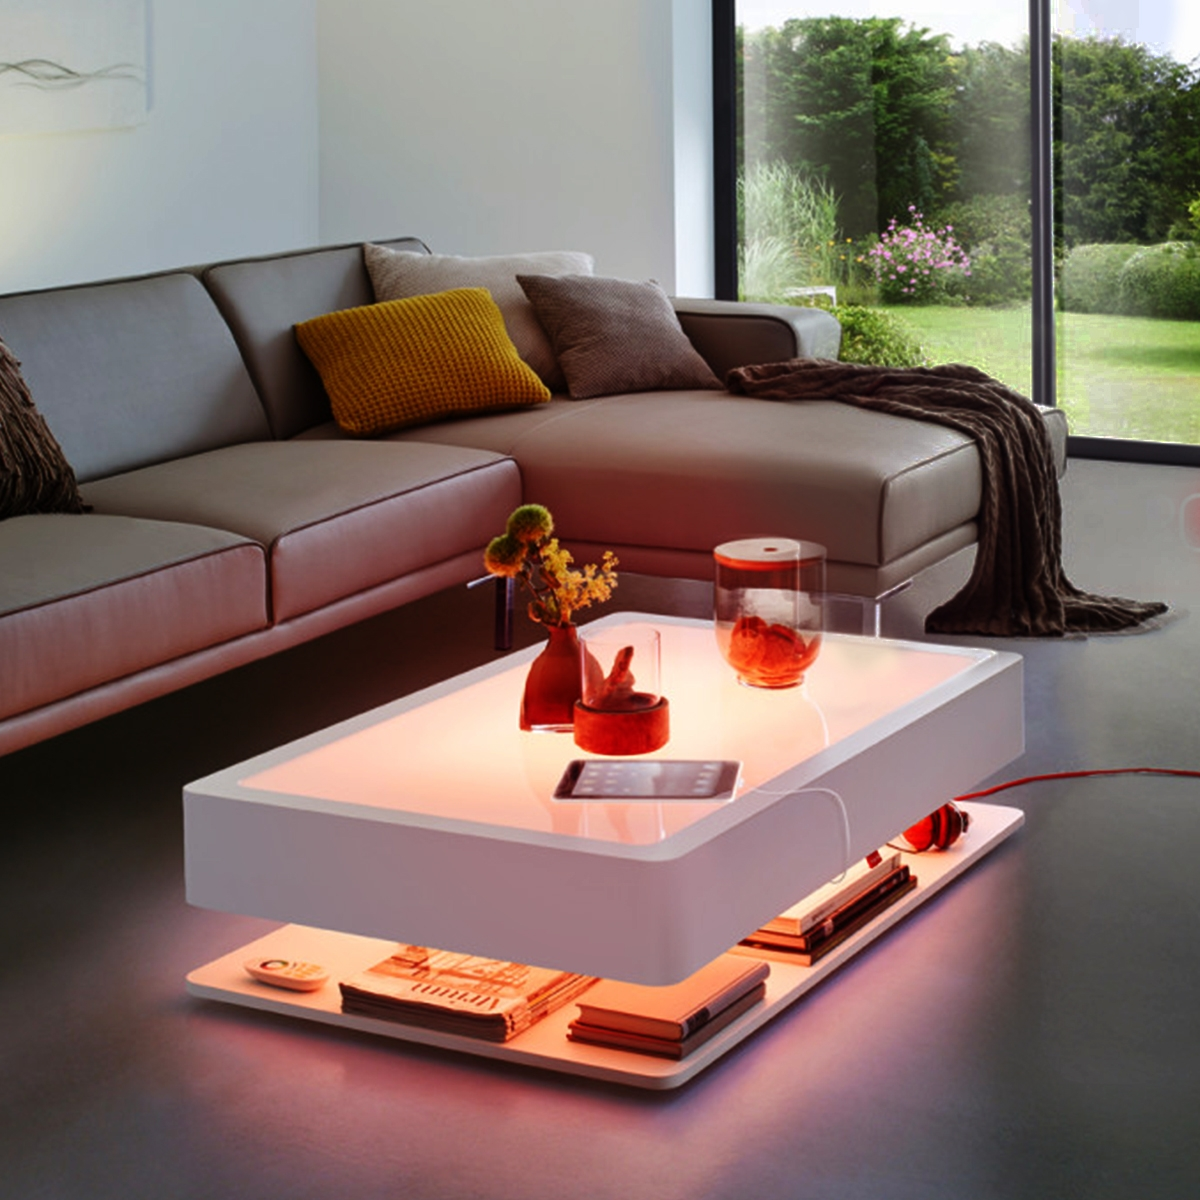 table basse blanche lumineuse led rgb ora home moree. Black Bedroom Furniture Sets. Home Design Ideas